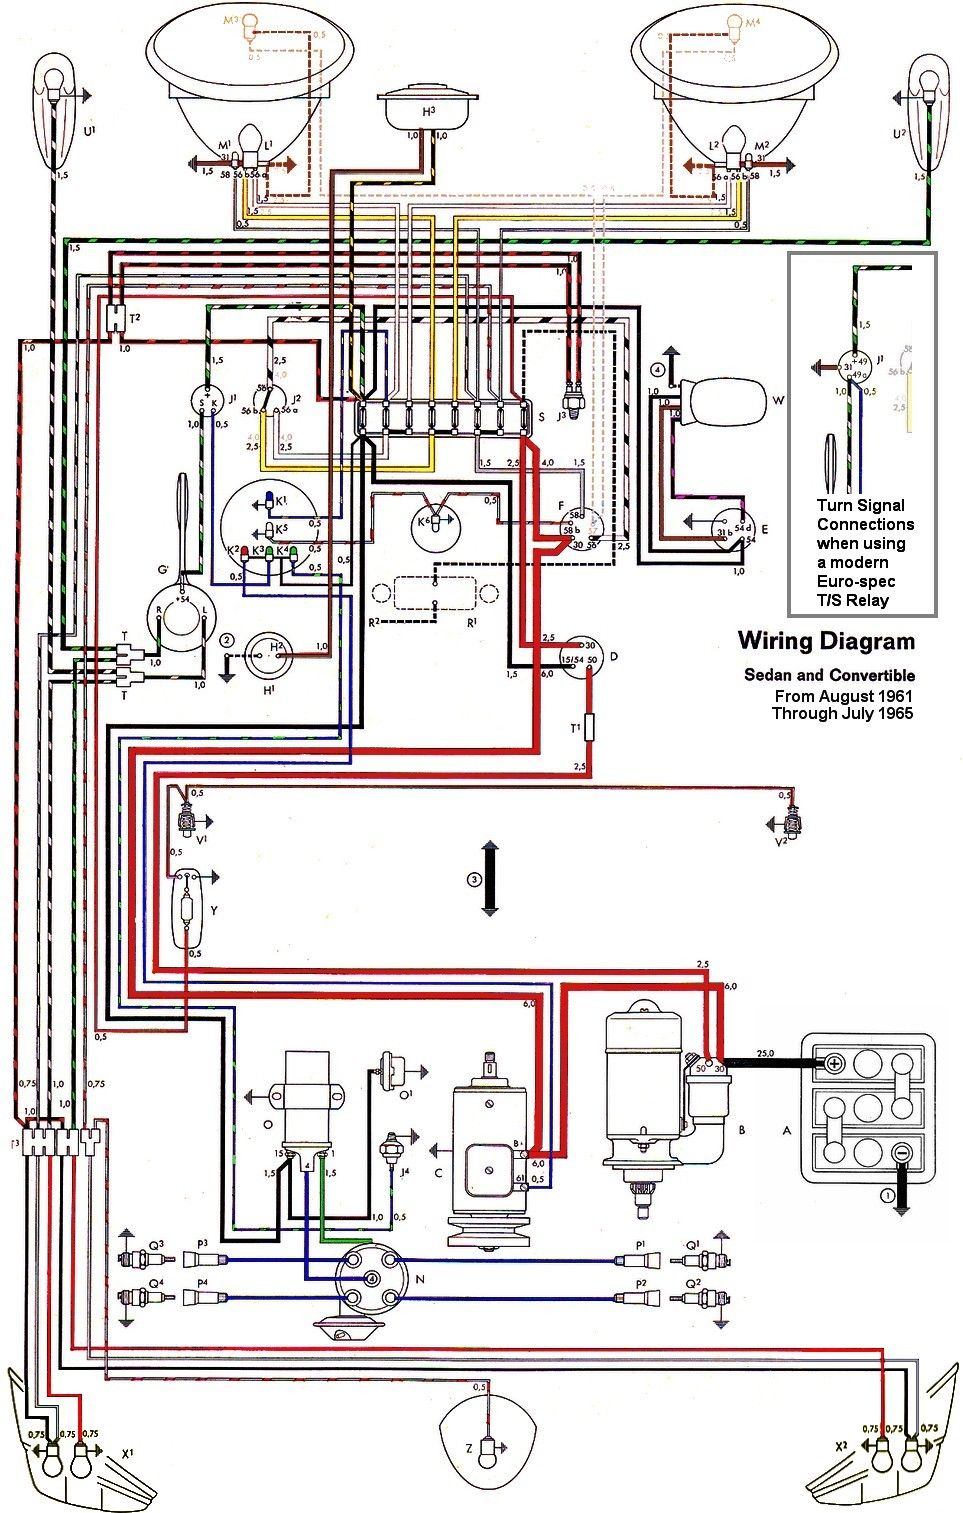 beetle wiring diagram vw wiring diagram turn signal hazard warning wiring diagram vw beetle sedan and convertible vw wiring diagram vw beetle sedan and convertible 1961